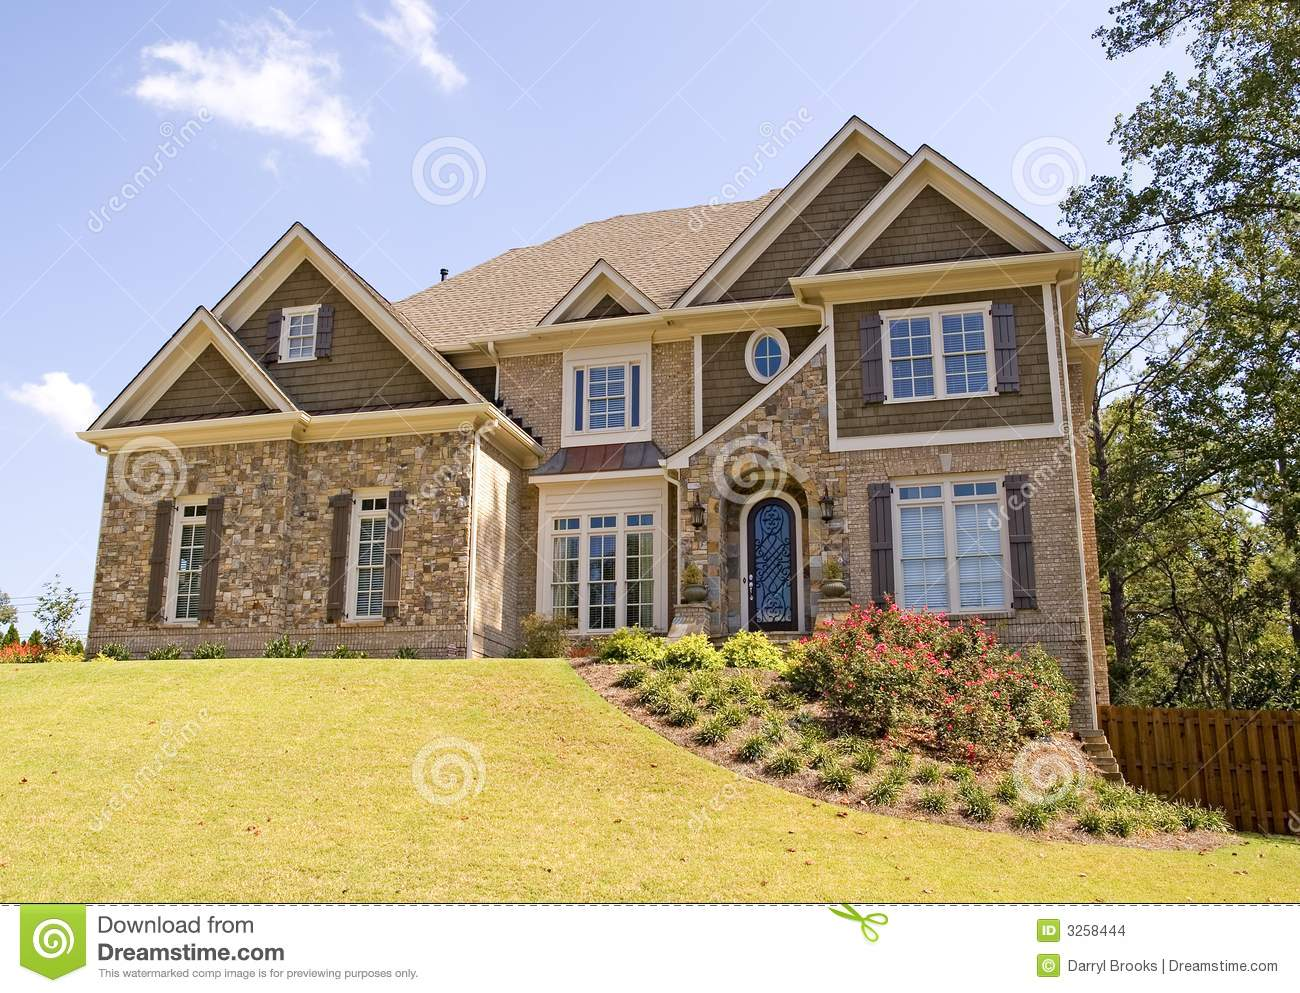 Nice house on landscaped hill stock images image 3258444 for Nice house images